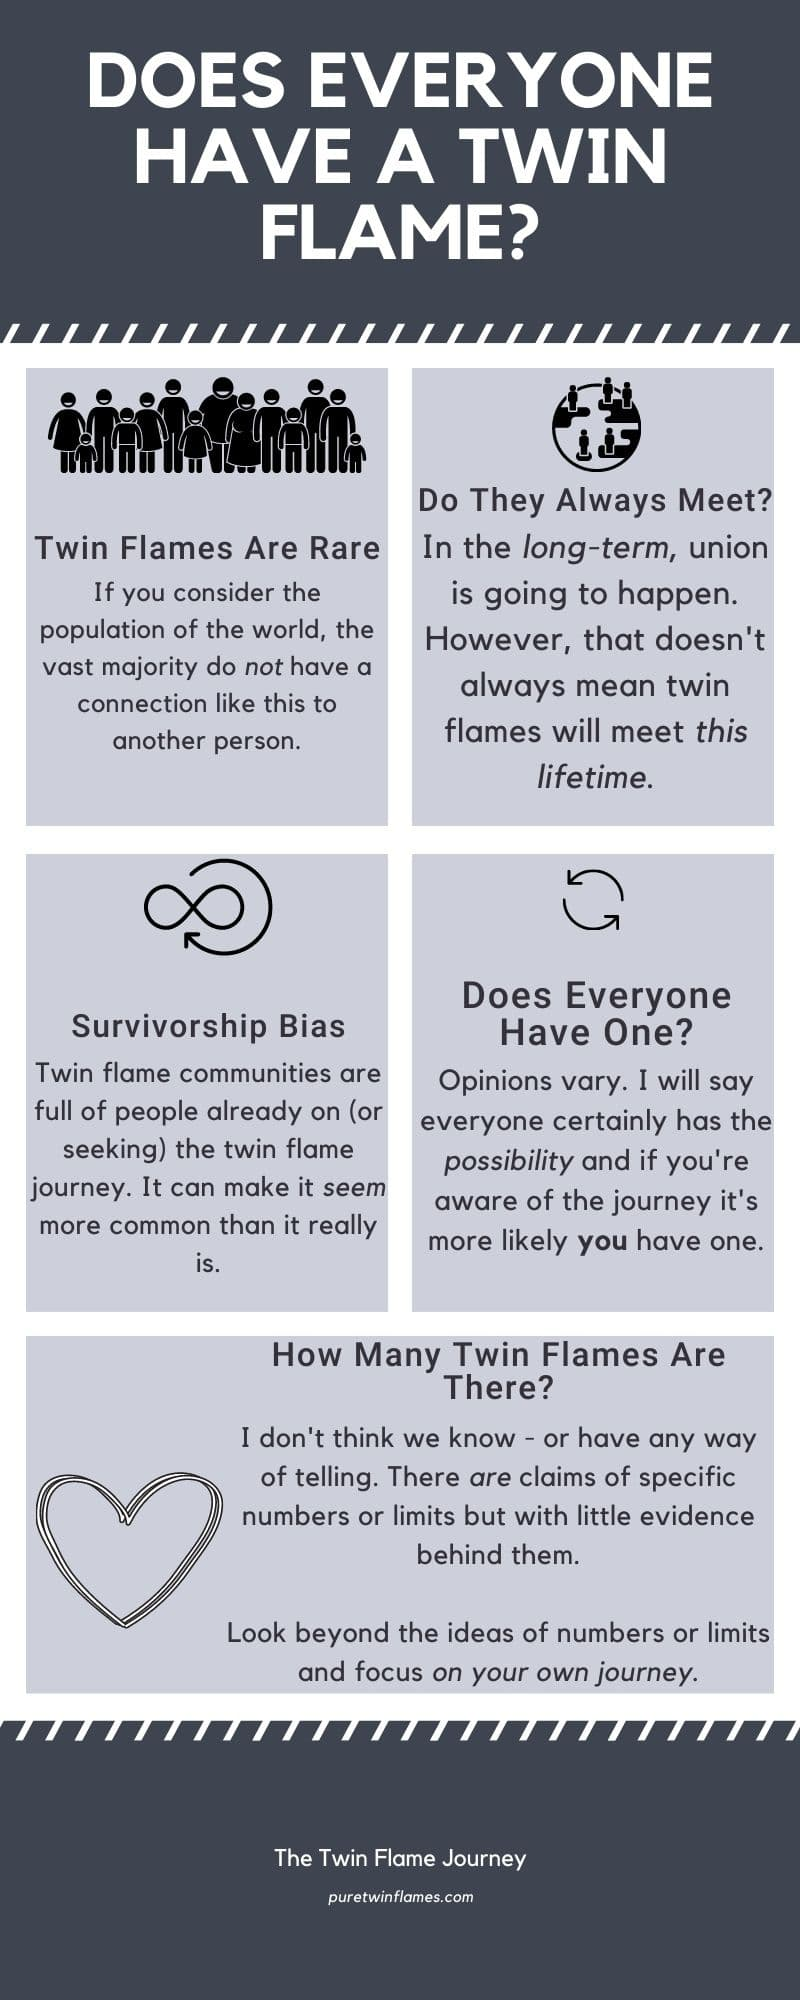 How Many Twin Flames Are There?